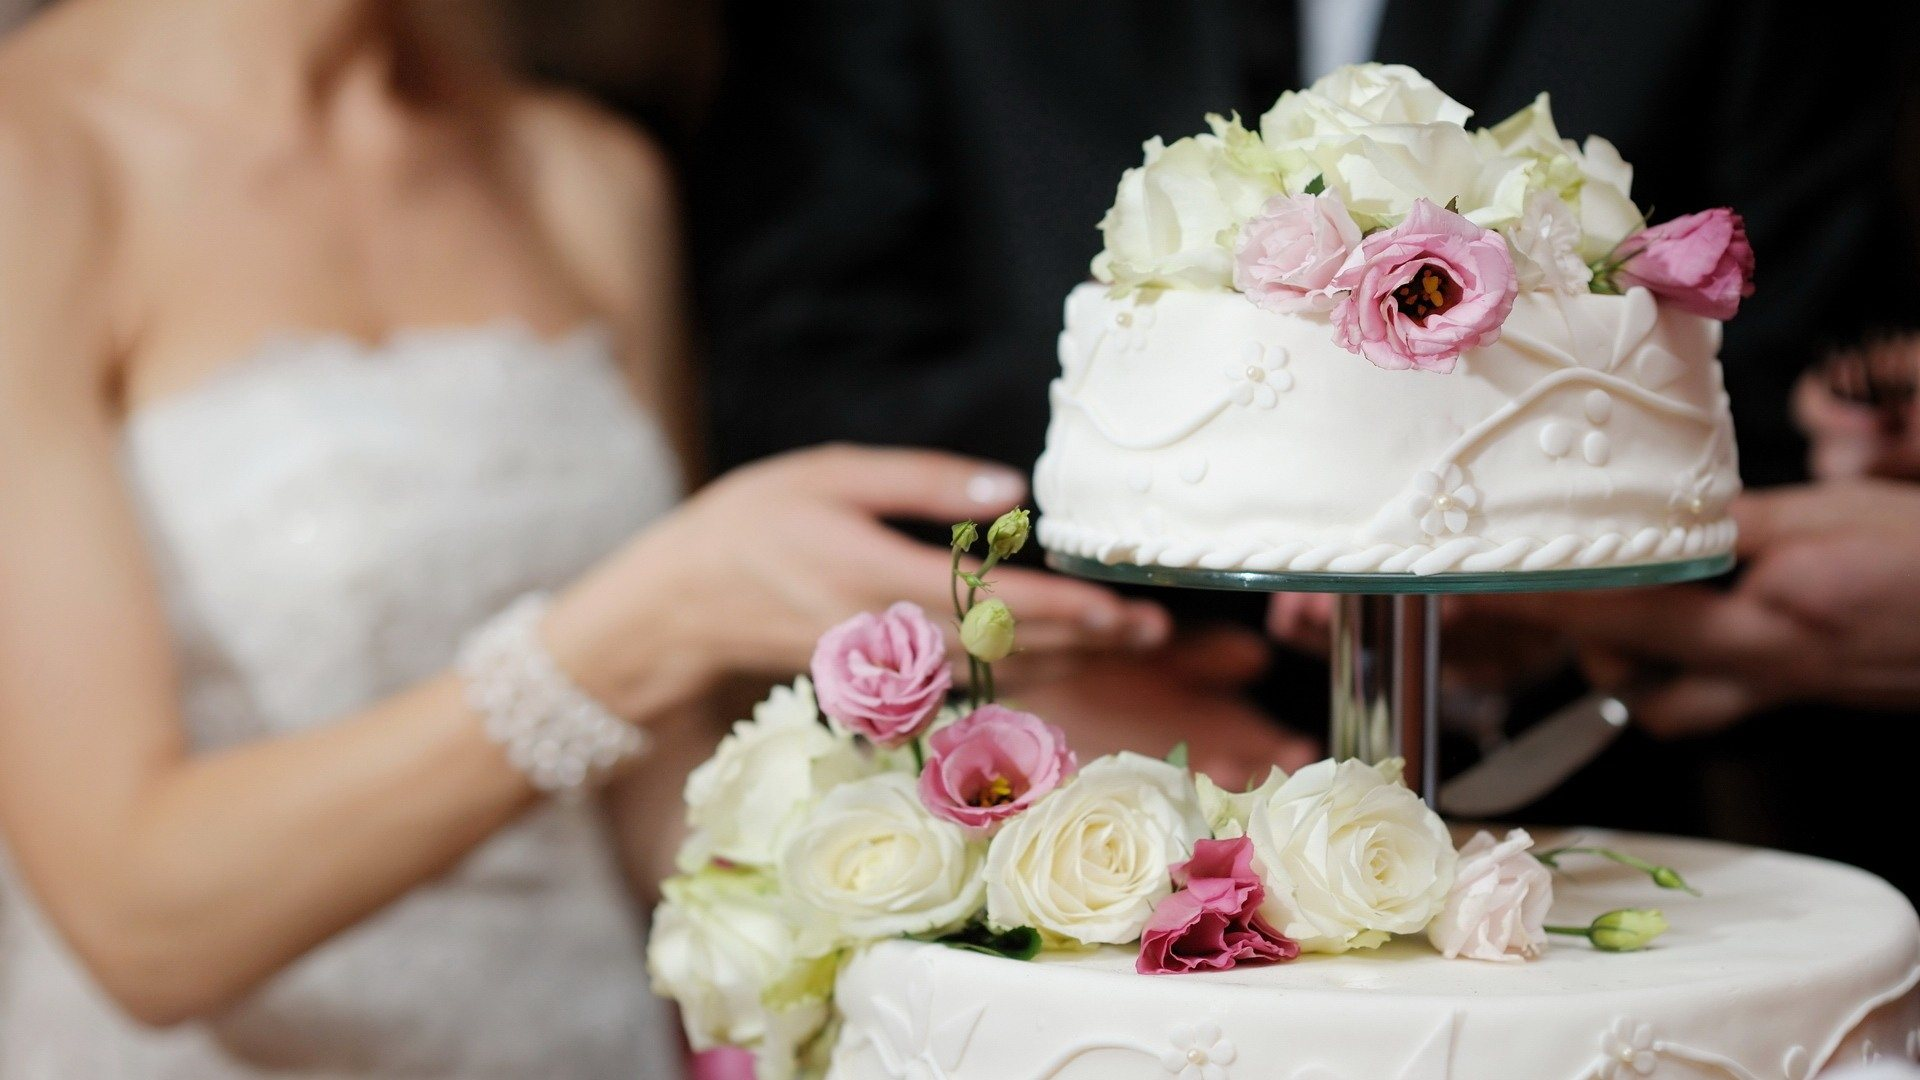 Cakes images wedding cake hd wallpaper and background photos - Wedding Cakes 7313